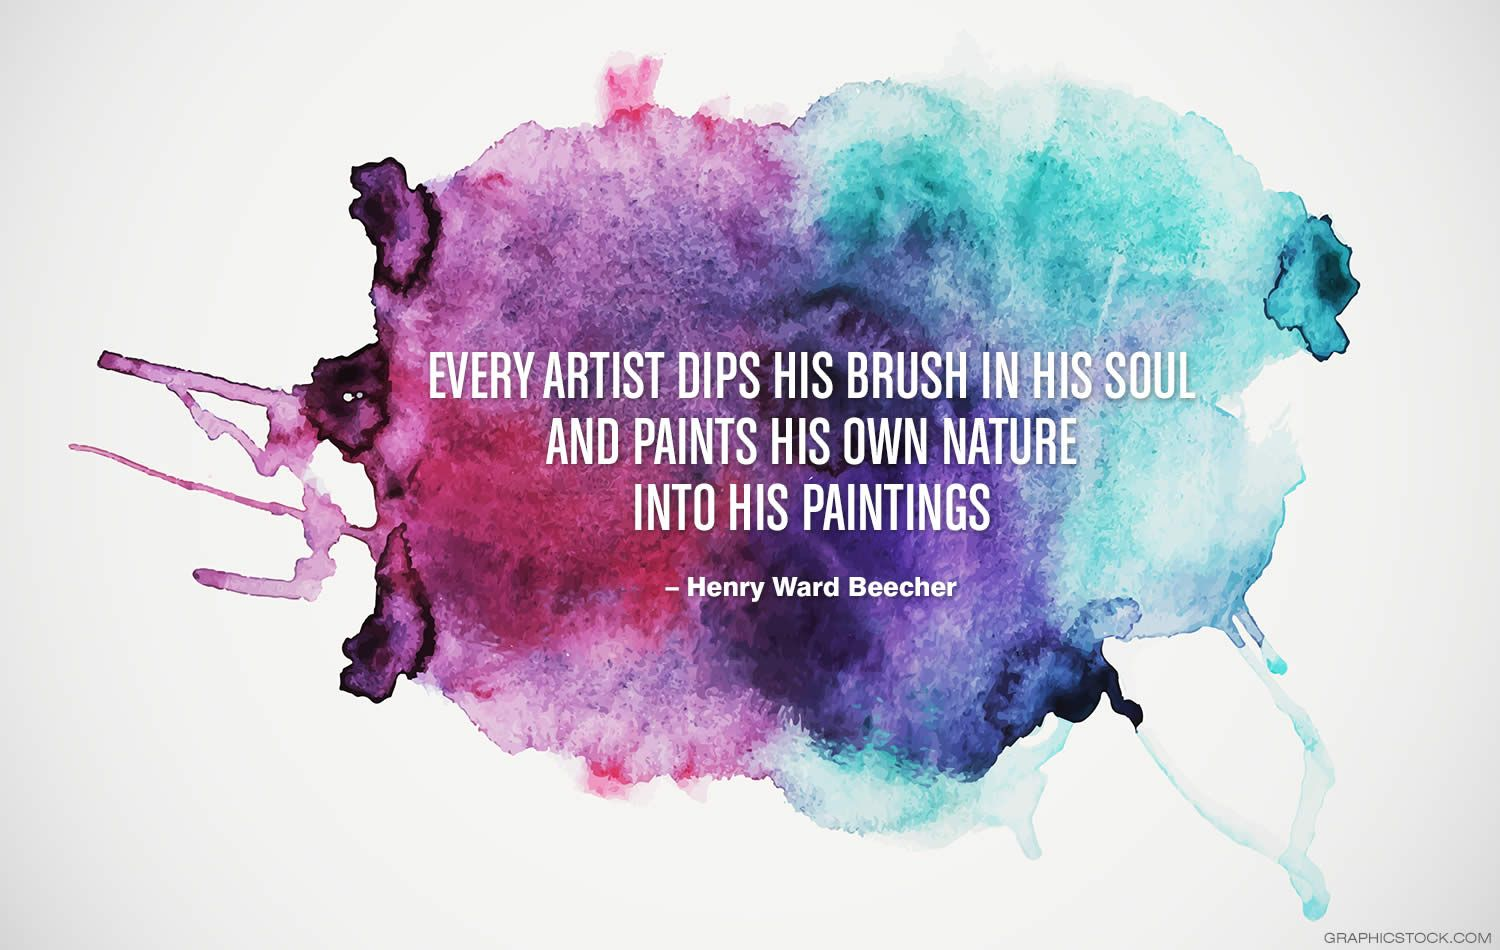 5 Inspirational Quotes About Creativity and Art  Inspirational